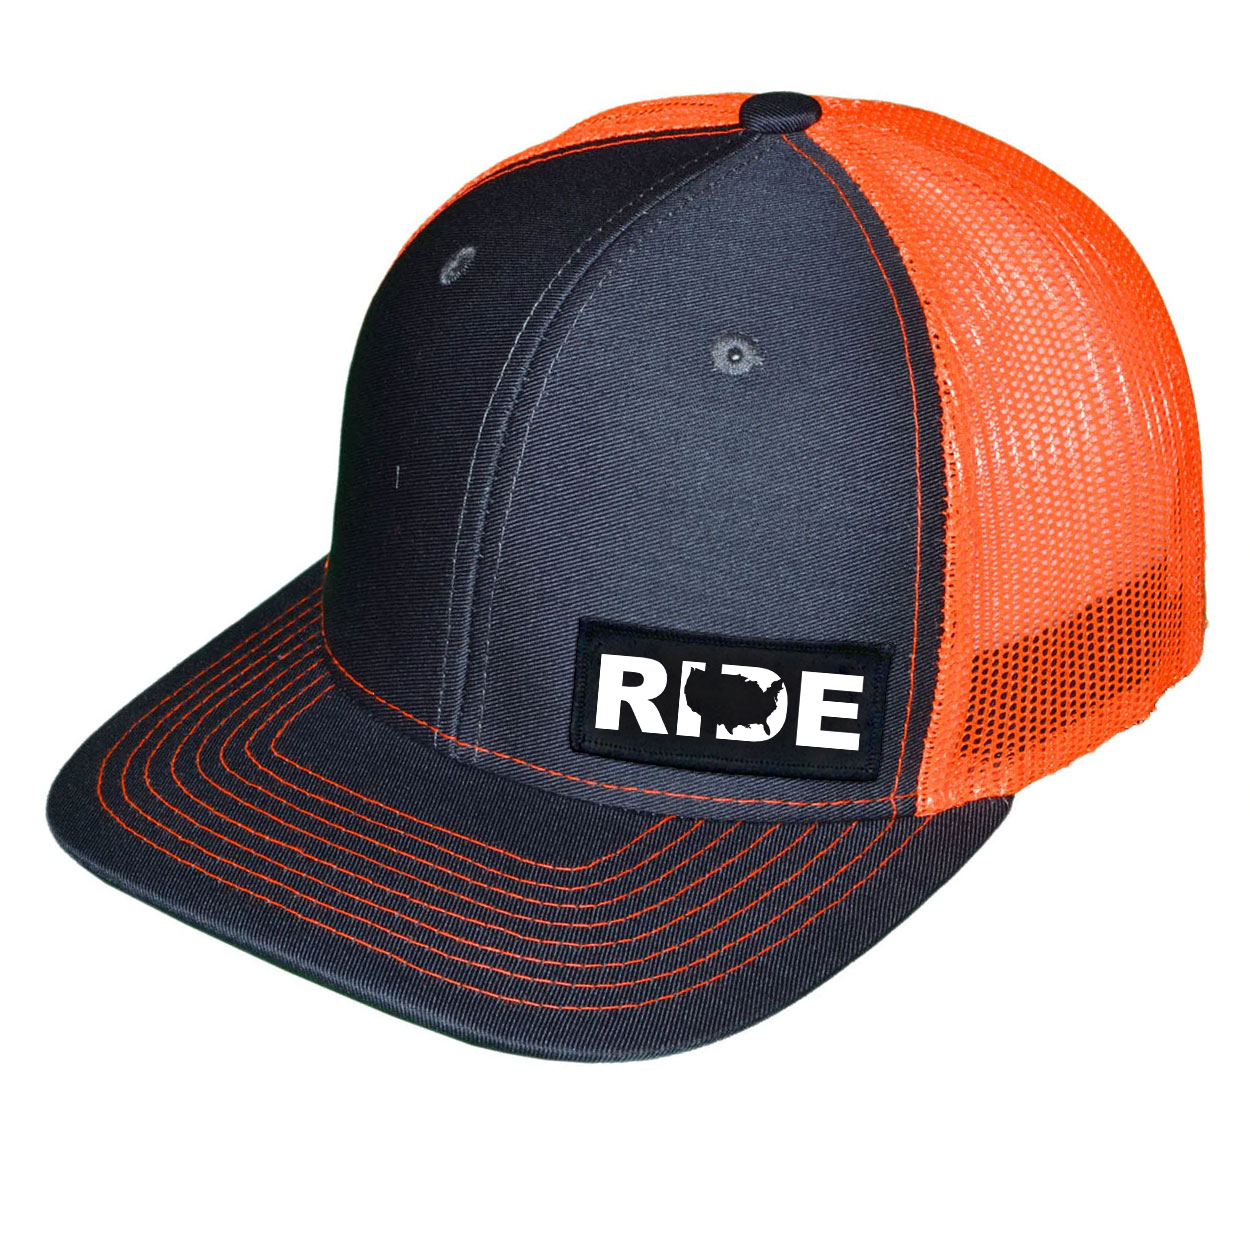 Ride United States Night Out Woven Patch Snapback Trucker Hat Dark Gray/Orange (White Logo)